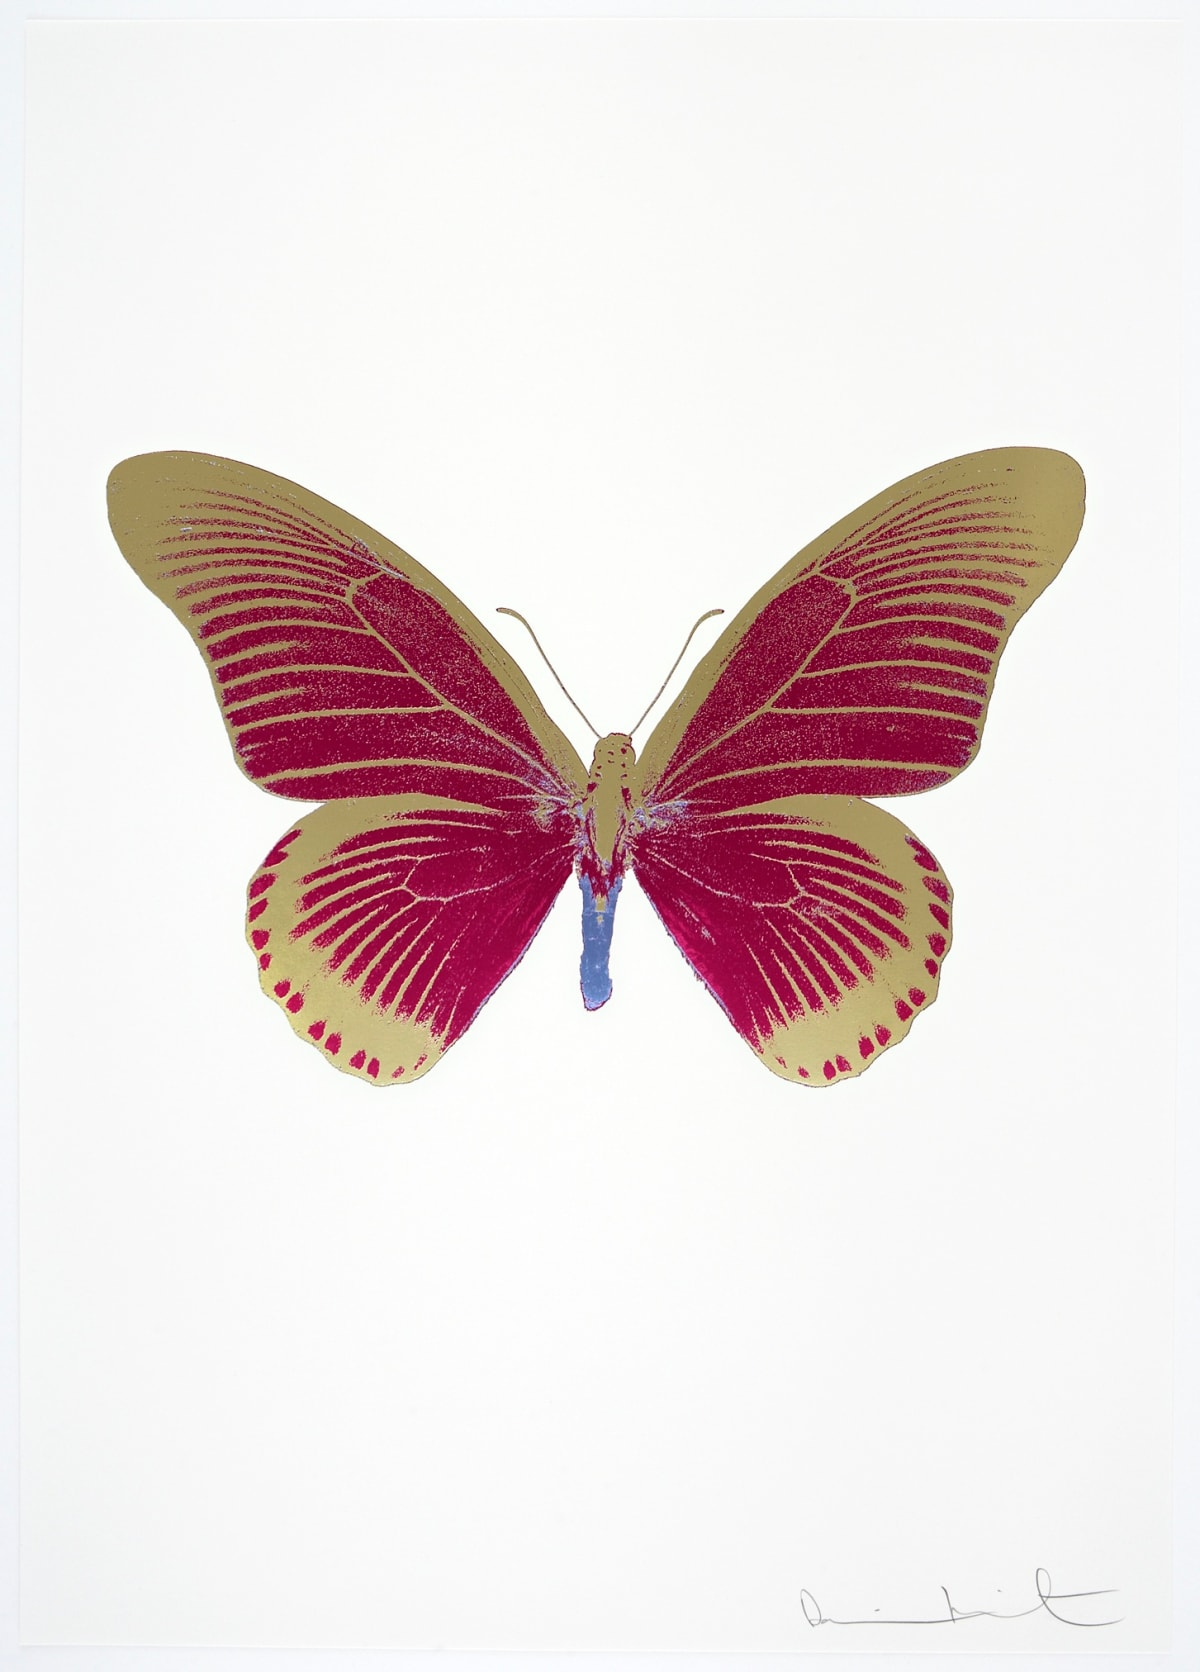 Damien Hirst The Souls IV - Fuchsia Pink/Cool Gold/Cornflower Blue Damien Hirst butterfly foil print for sale Damien Hirst print for sale , 2010 3 colour foil block on 300gsm Arches 88 archival paper. Signed and numbered. Published by Paul Stolper and Other Criteria 72 x 51cm OC8056 / 1418-79 Edition of 15